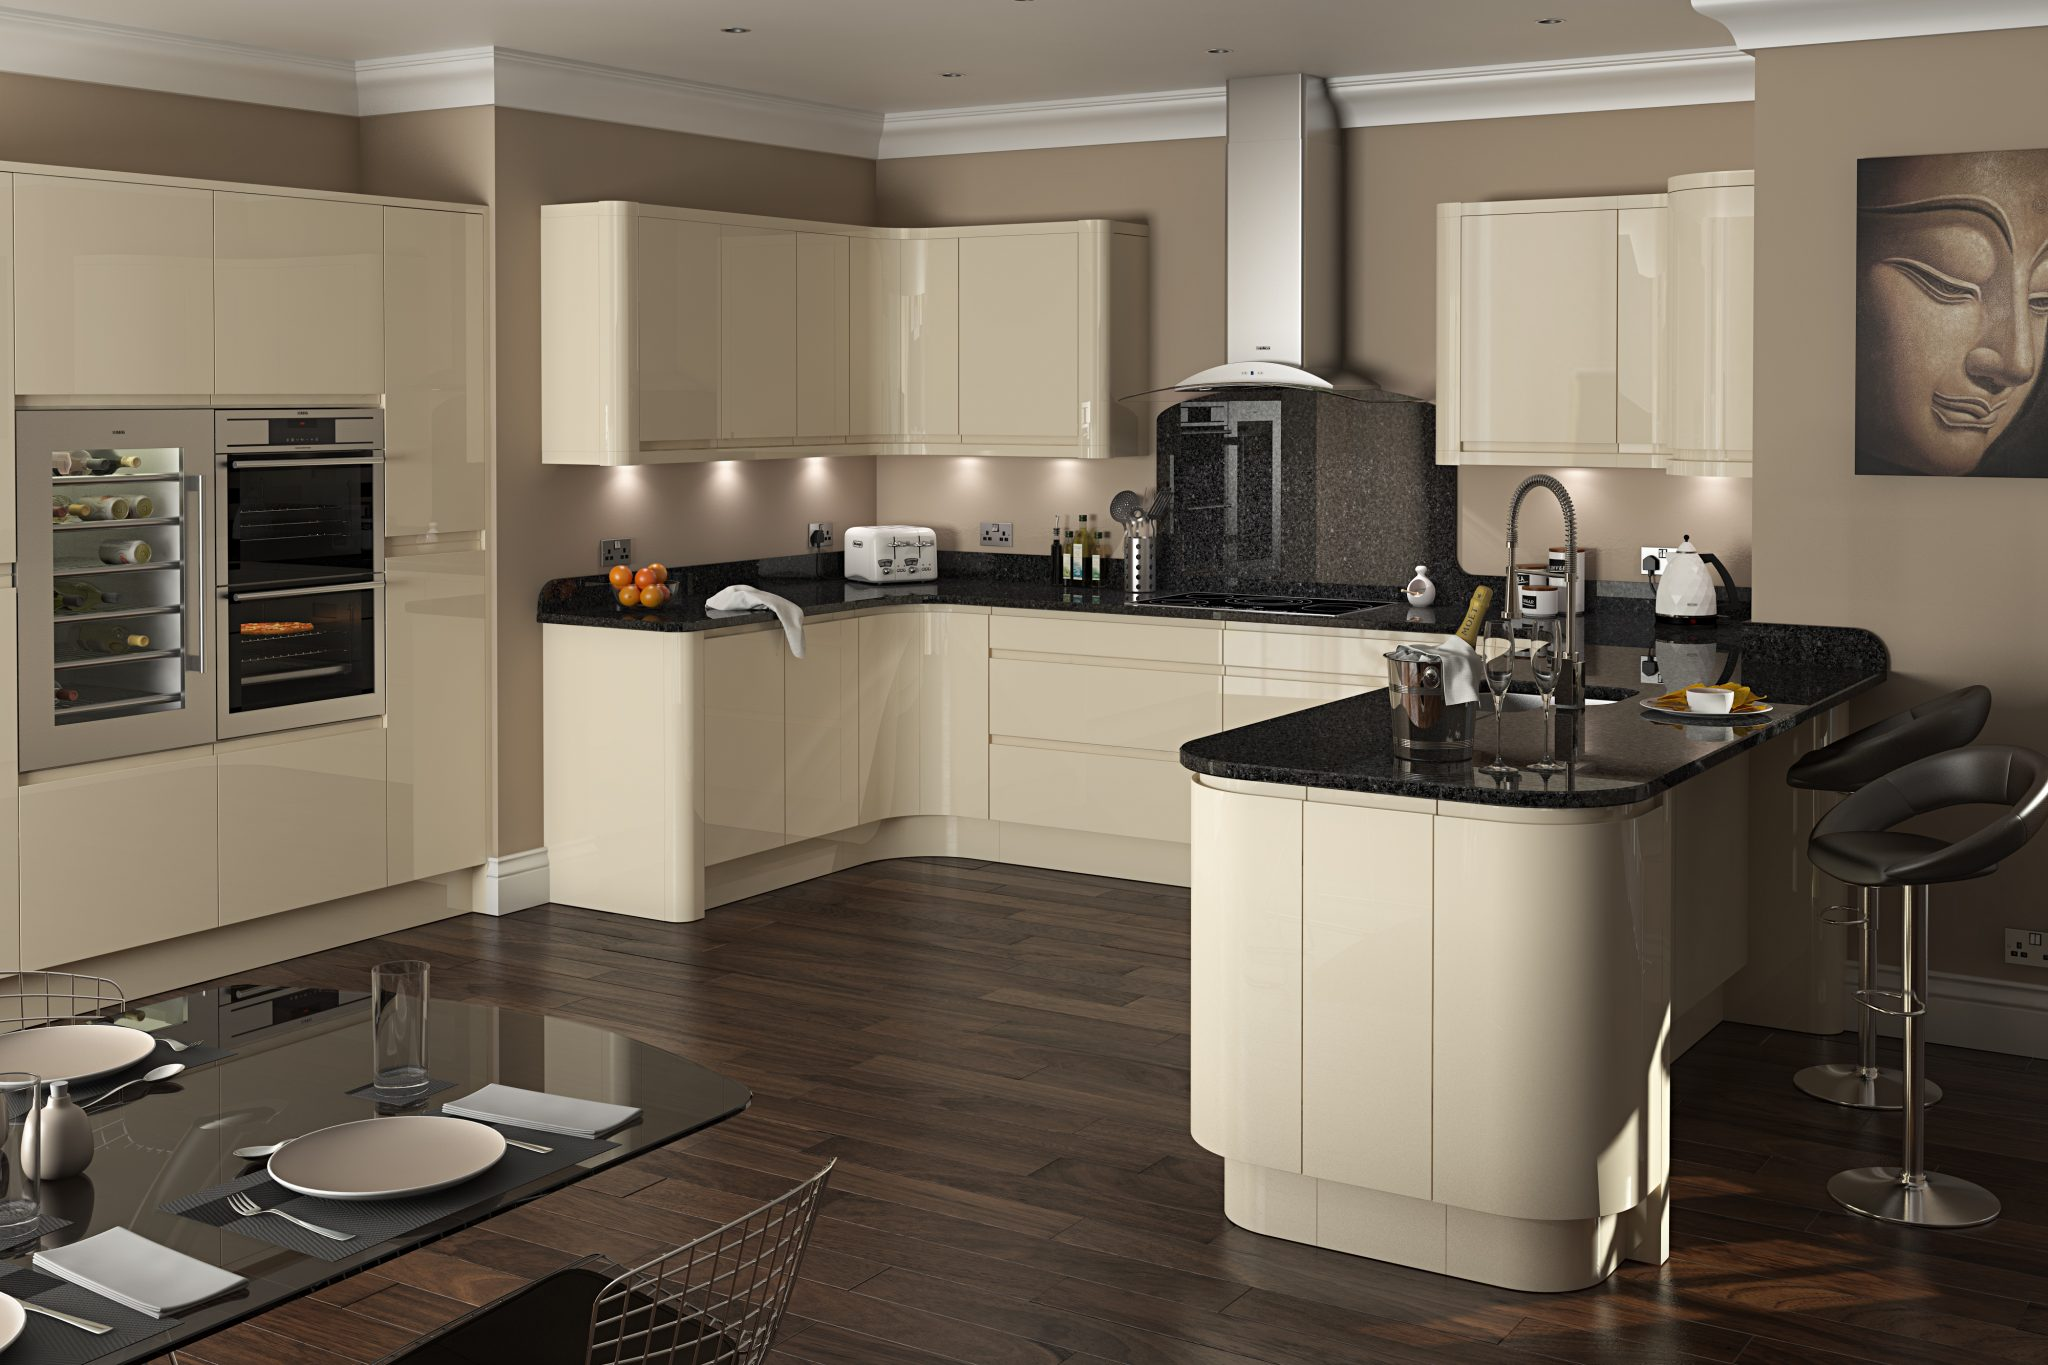 Kitchen design kitchens wirral bespoke luxury designs for Kitchen styles pictures